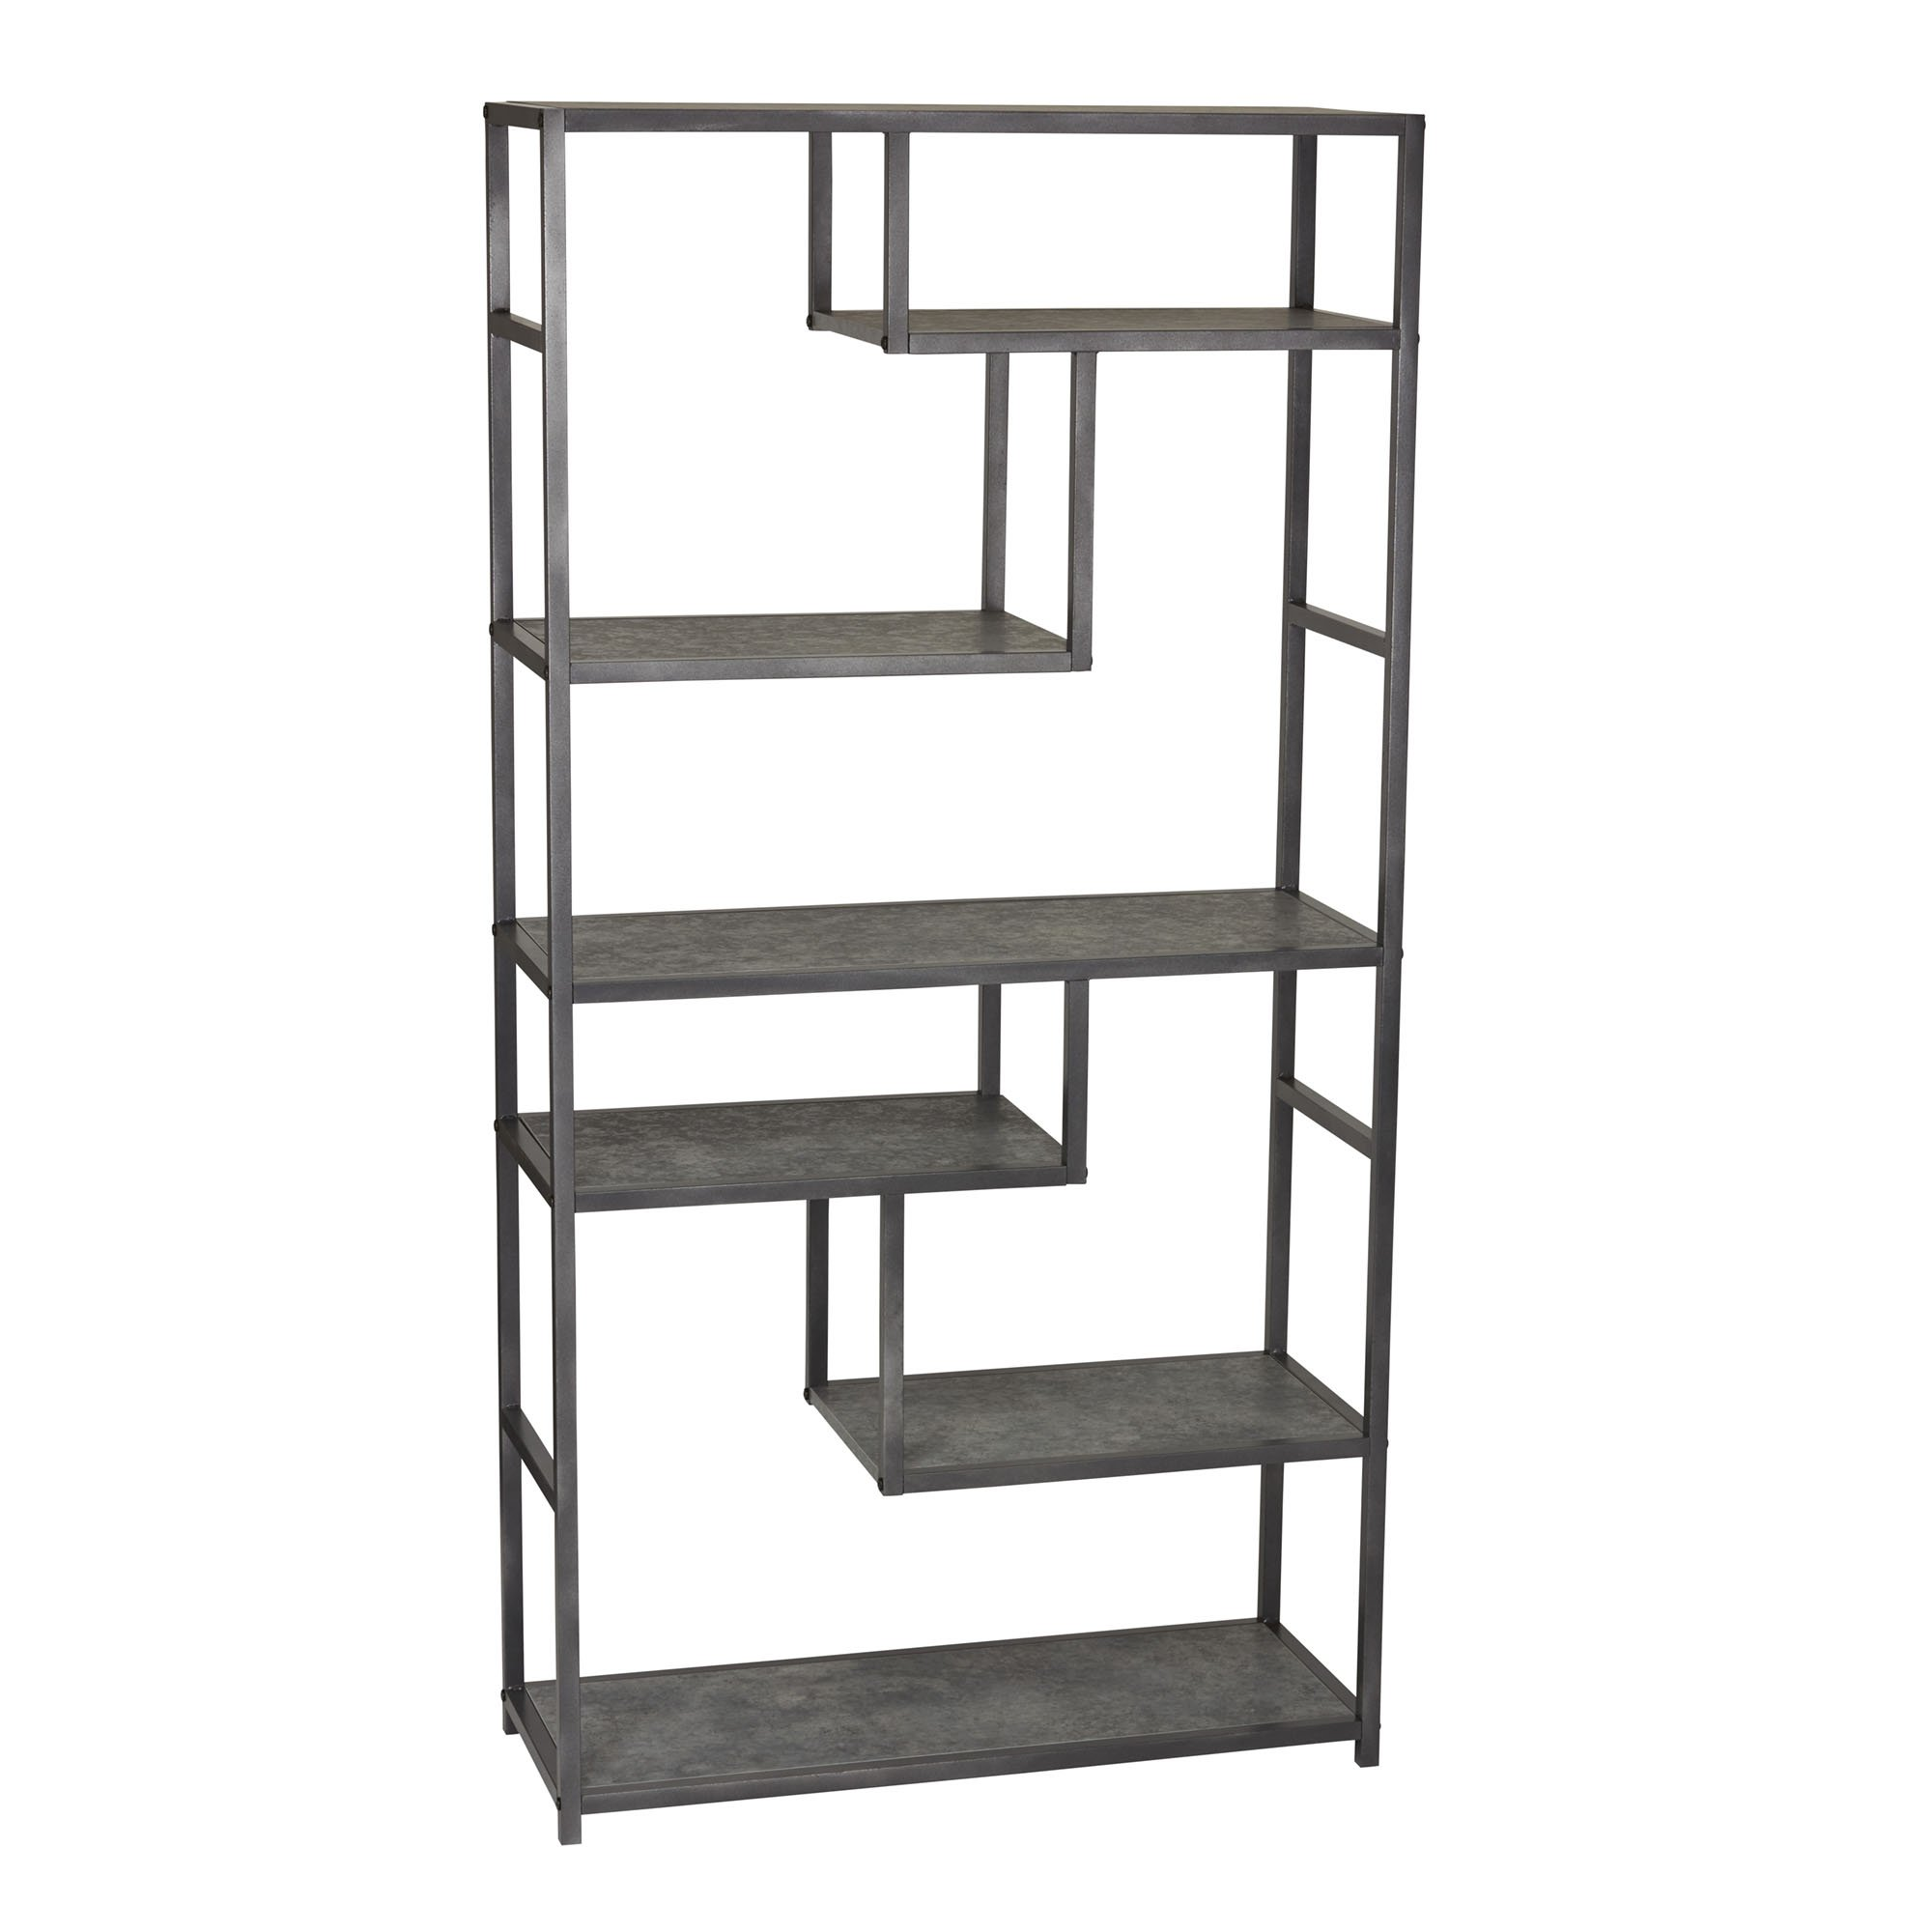 Household Essentials 8090-1 Tall Open Bookcase | Geometric Storage Shelves | Faux Slate Concrete by Household Essentials